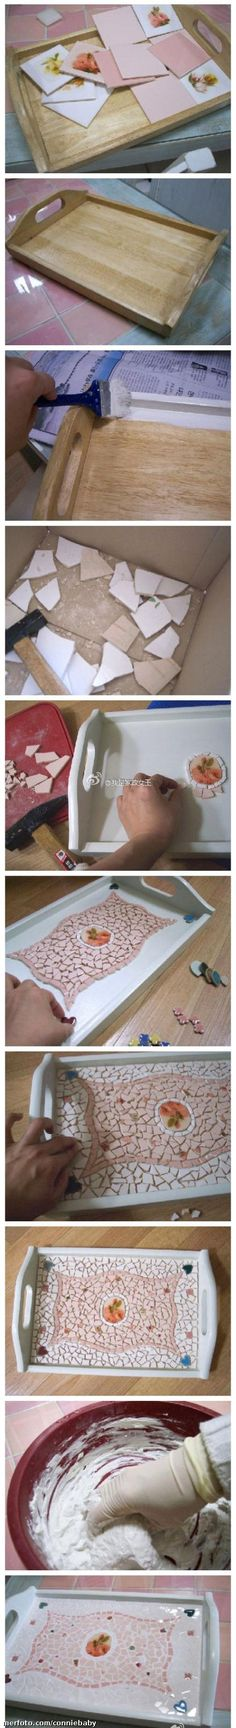 diy ideas, diy crafts, diy tutorial, serving trays, mosaic tables, broken china, mosaic tiles, craft ideas, christmas gifts